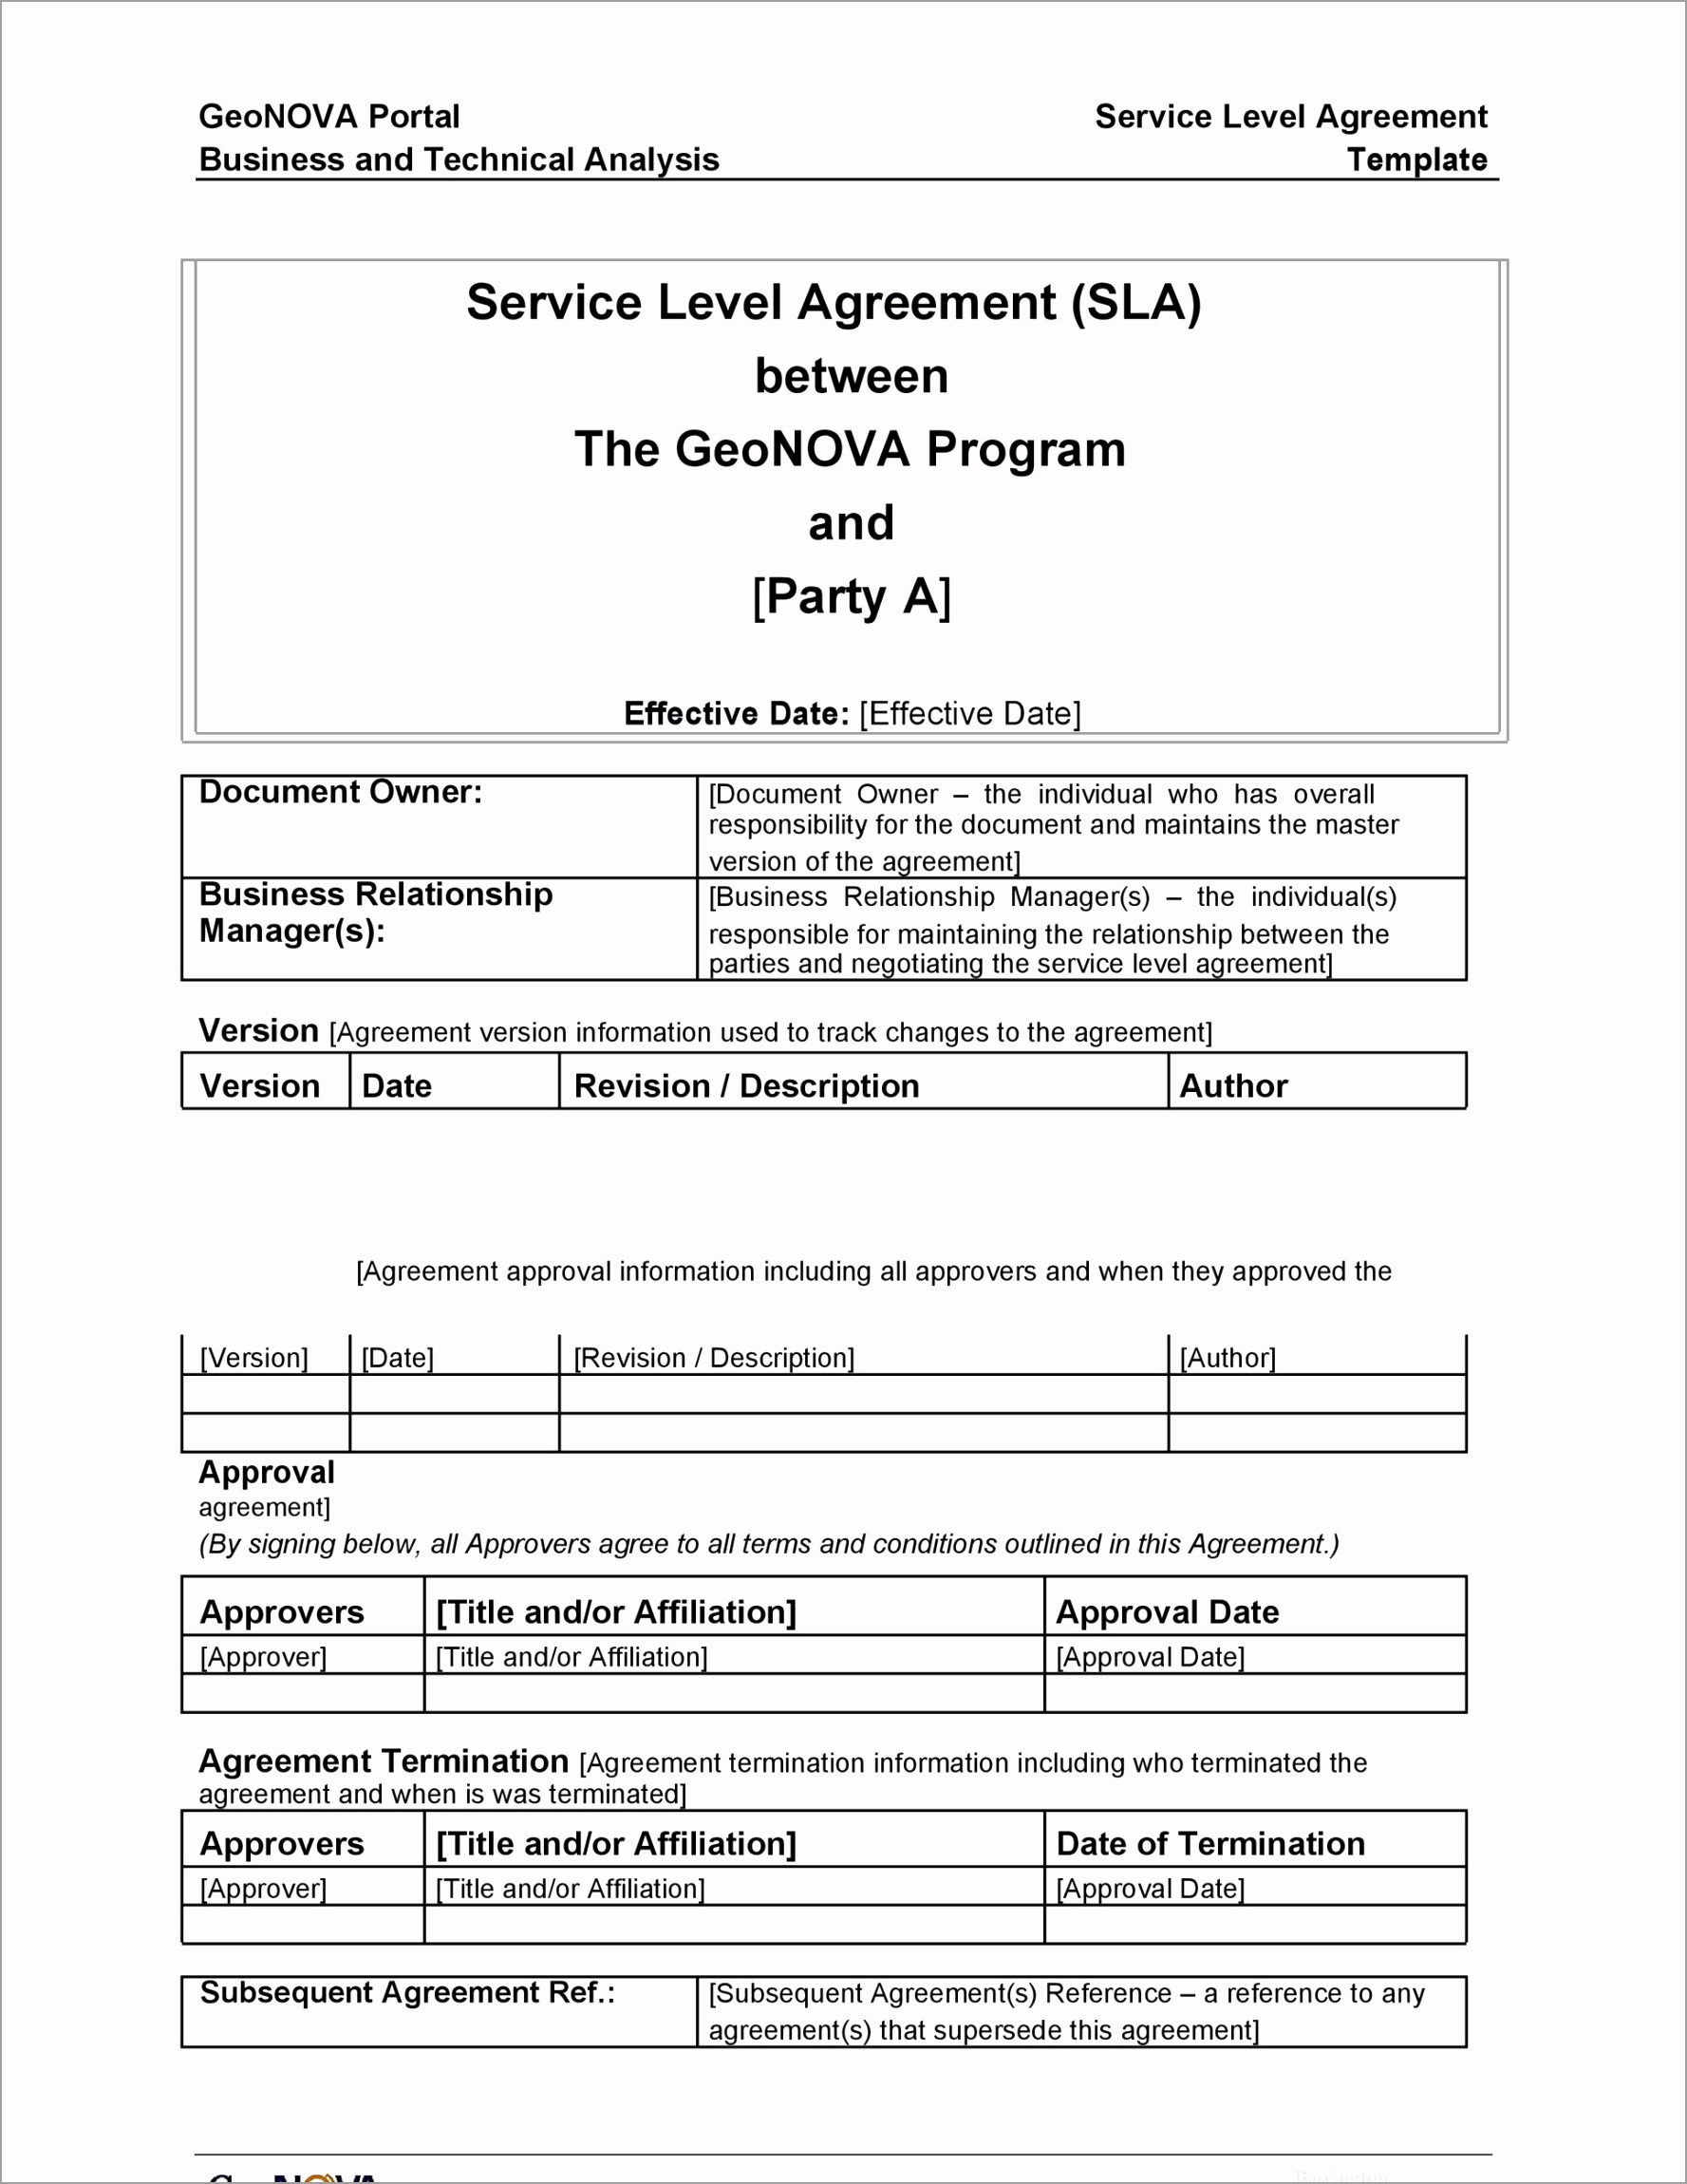 Service Agreement Template 06 iueir